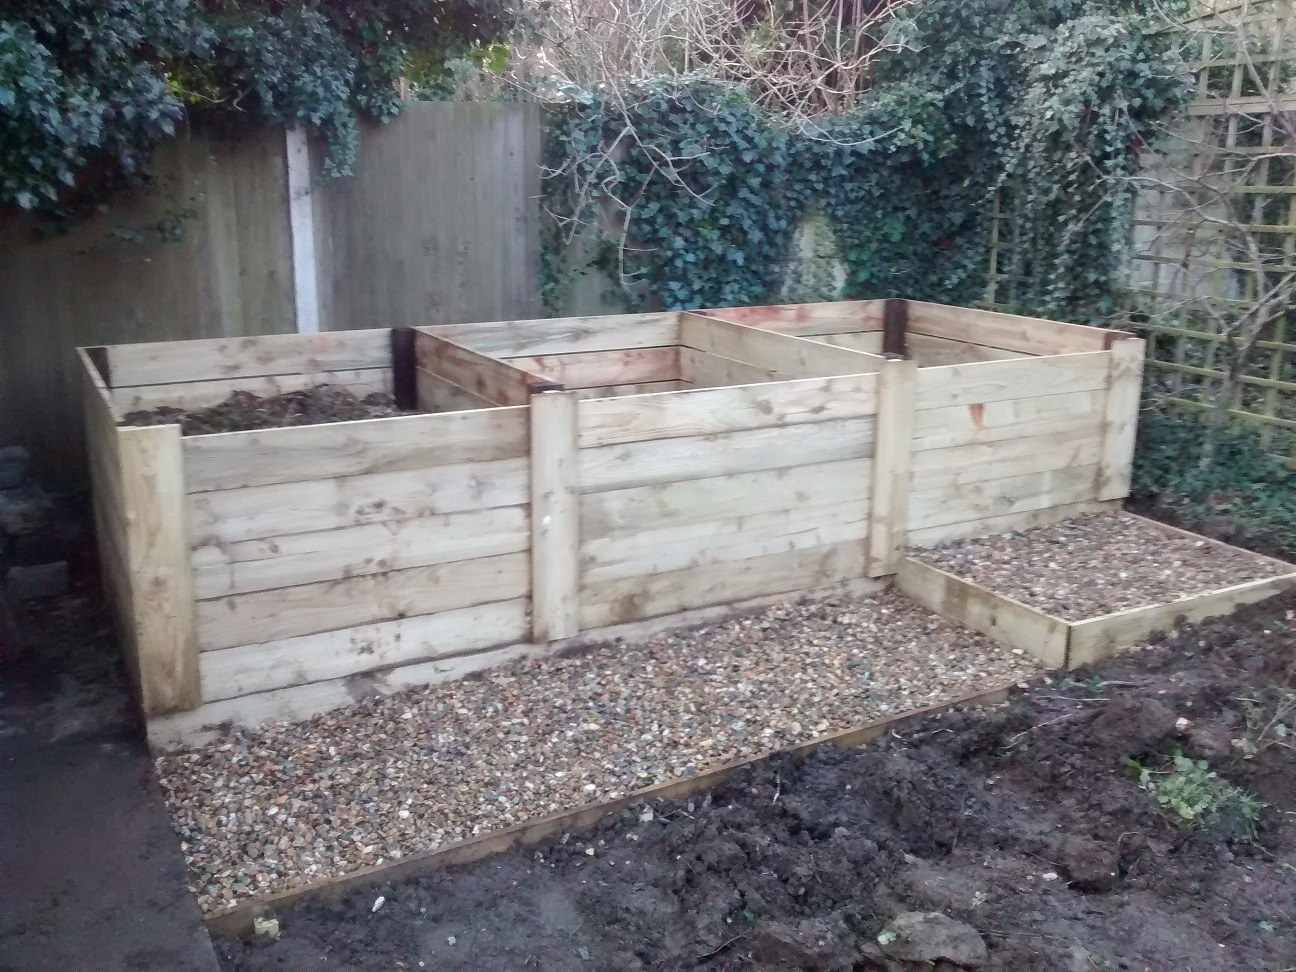 Compost after